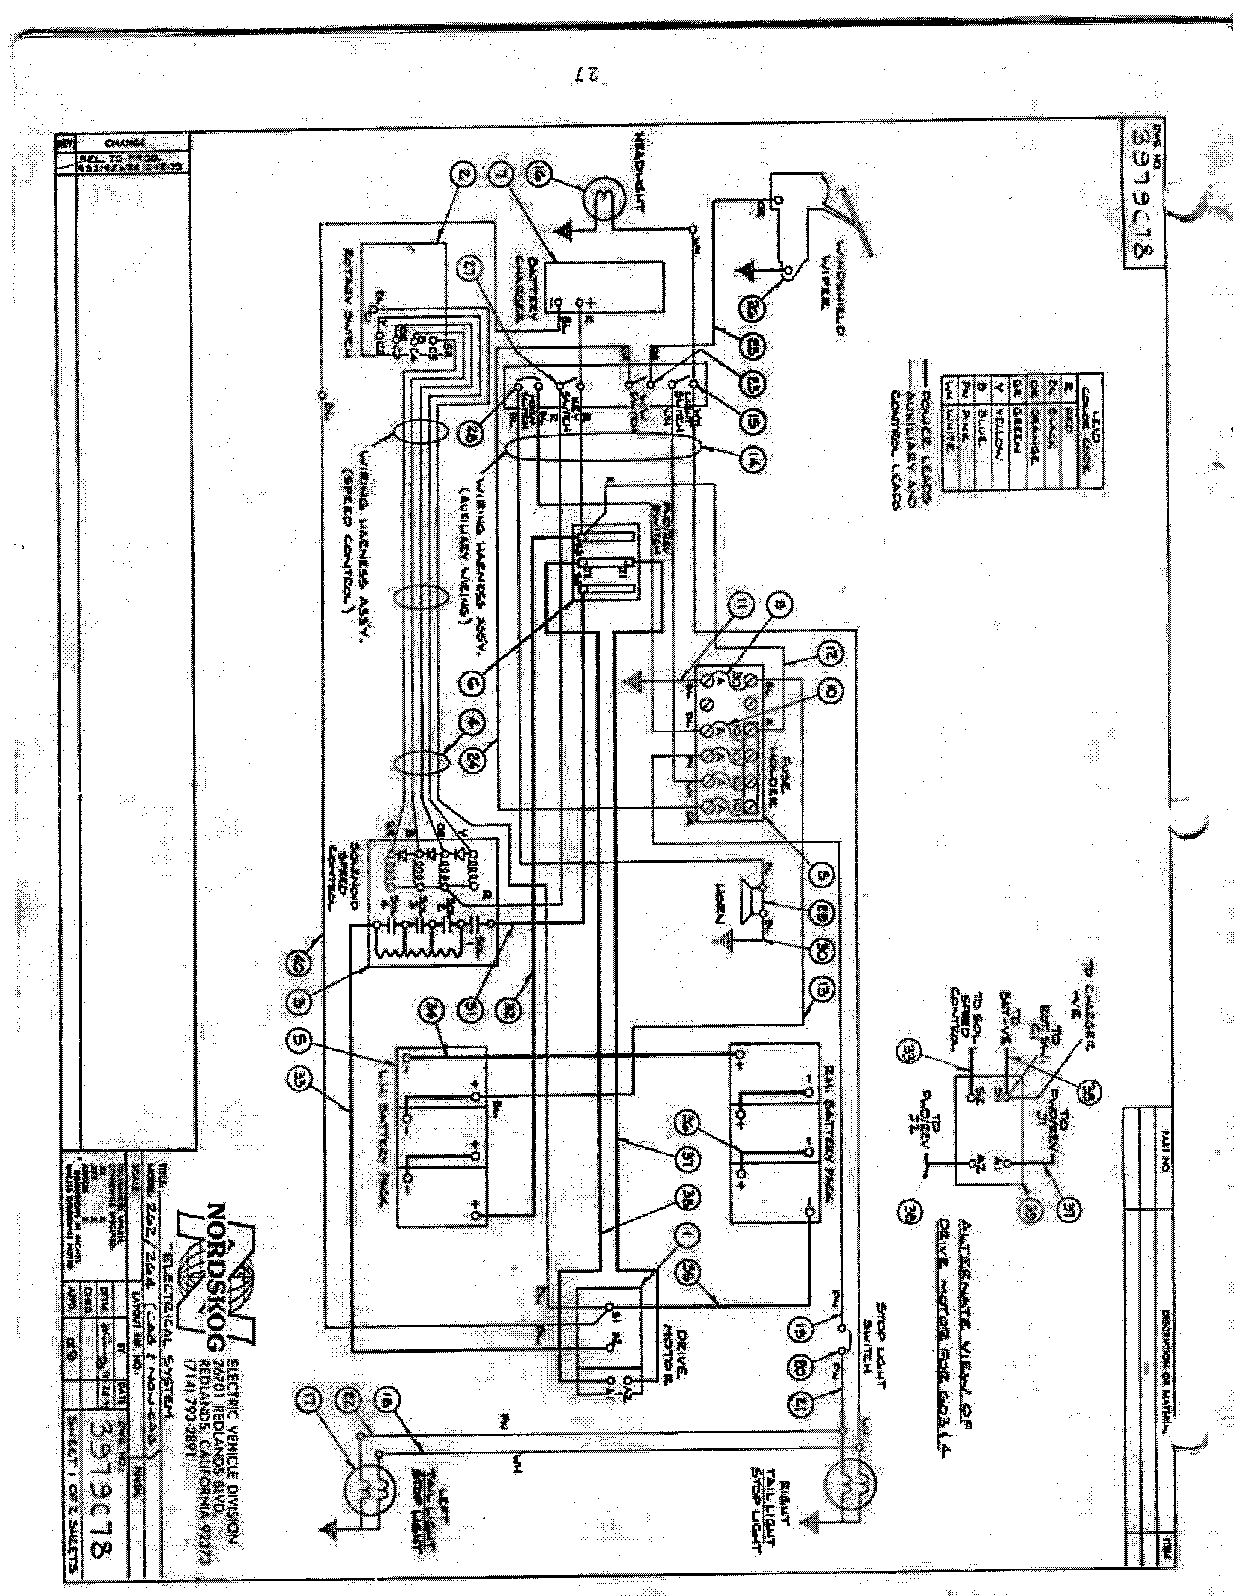 Wire Schematics Ez Go Model 99